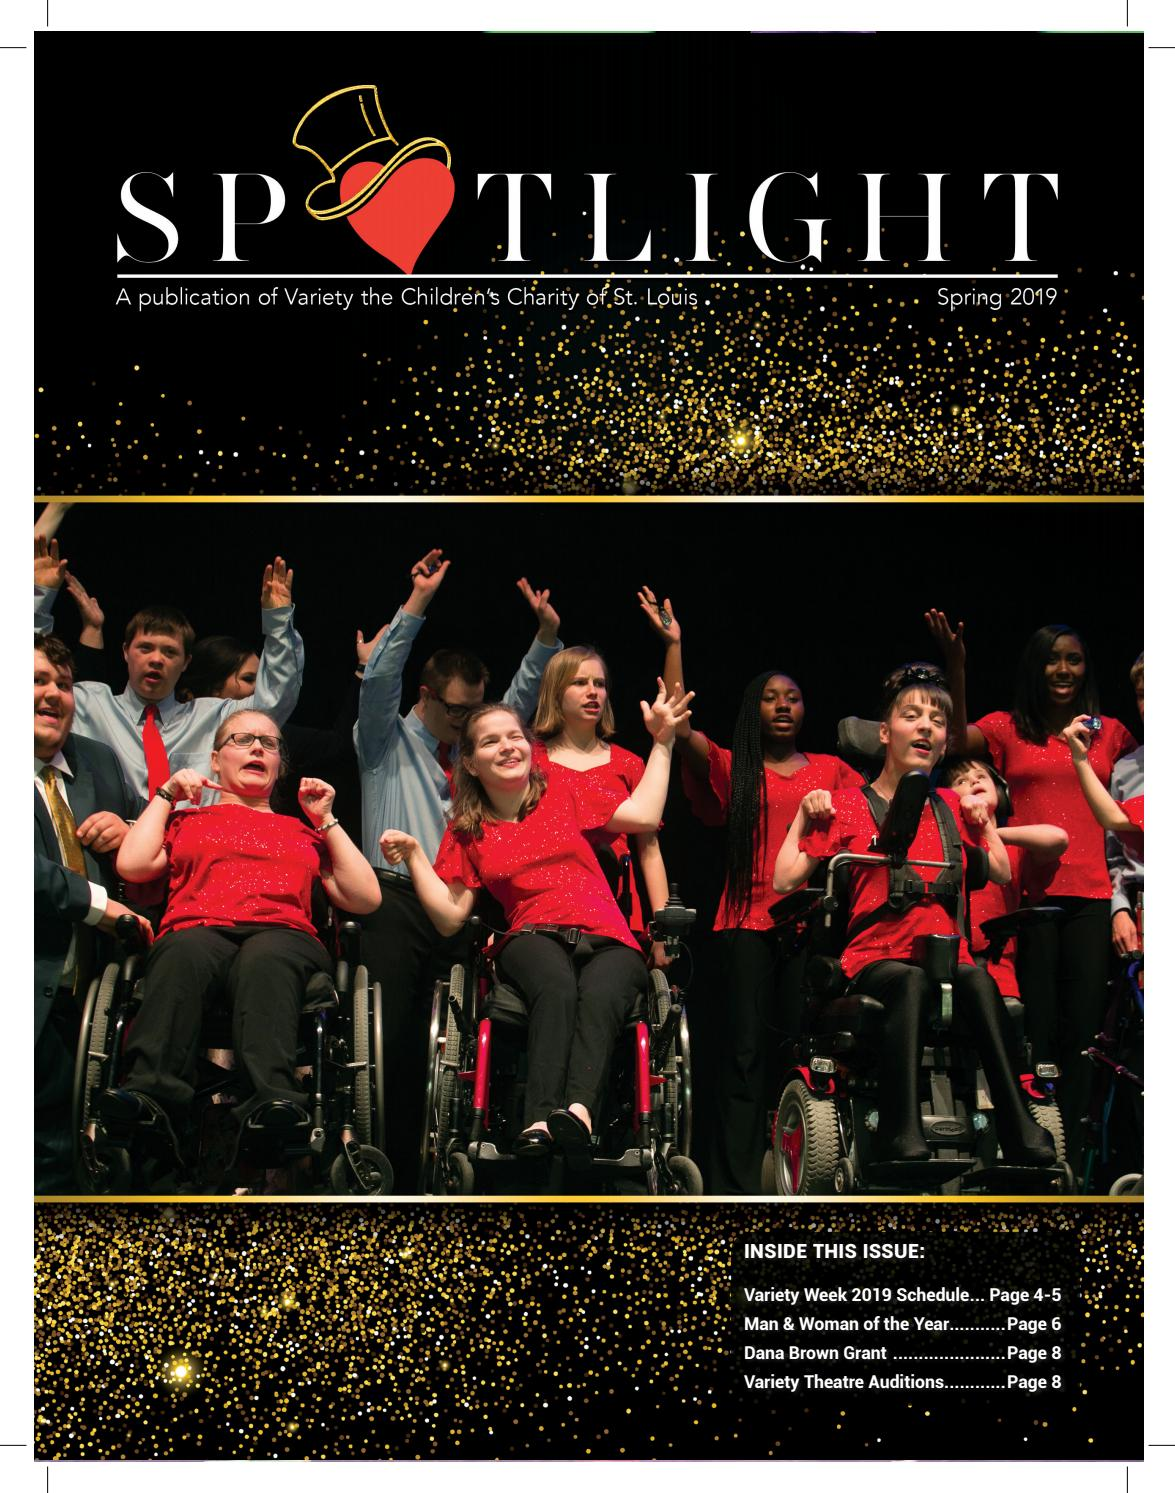 Spring 2019 Spotlight by Variety the Children's Charity of